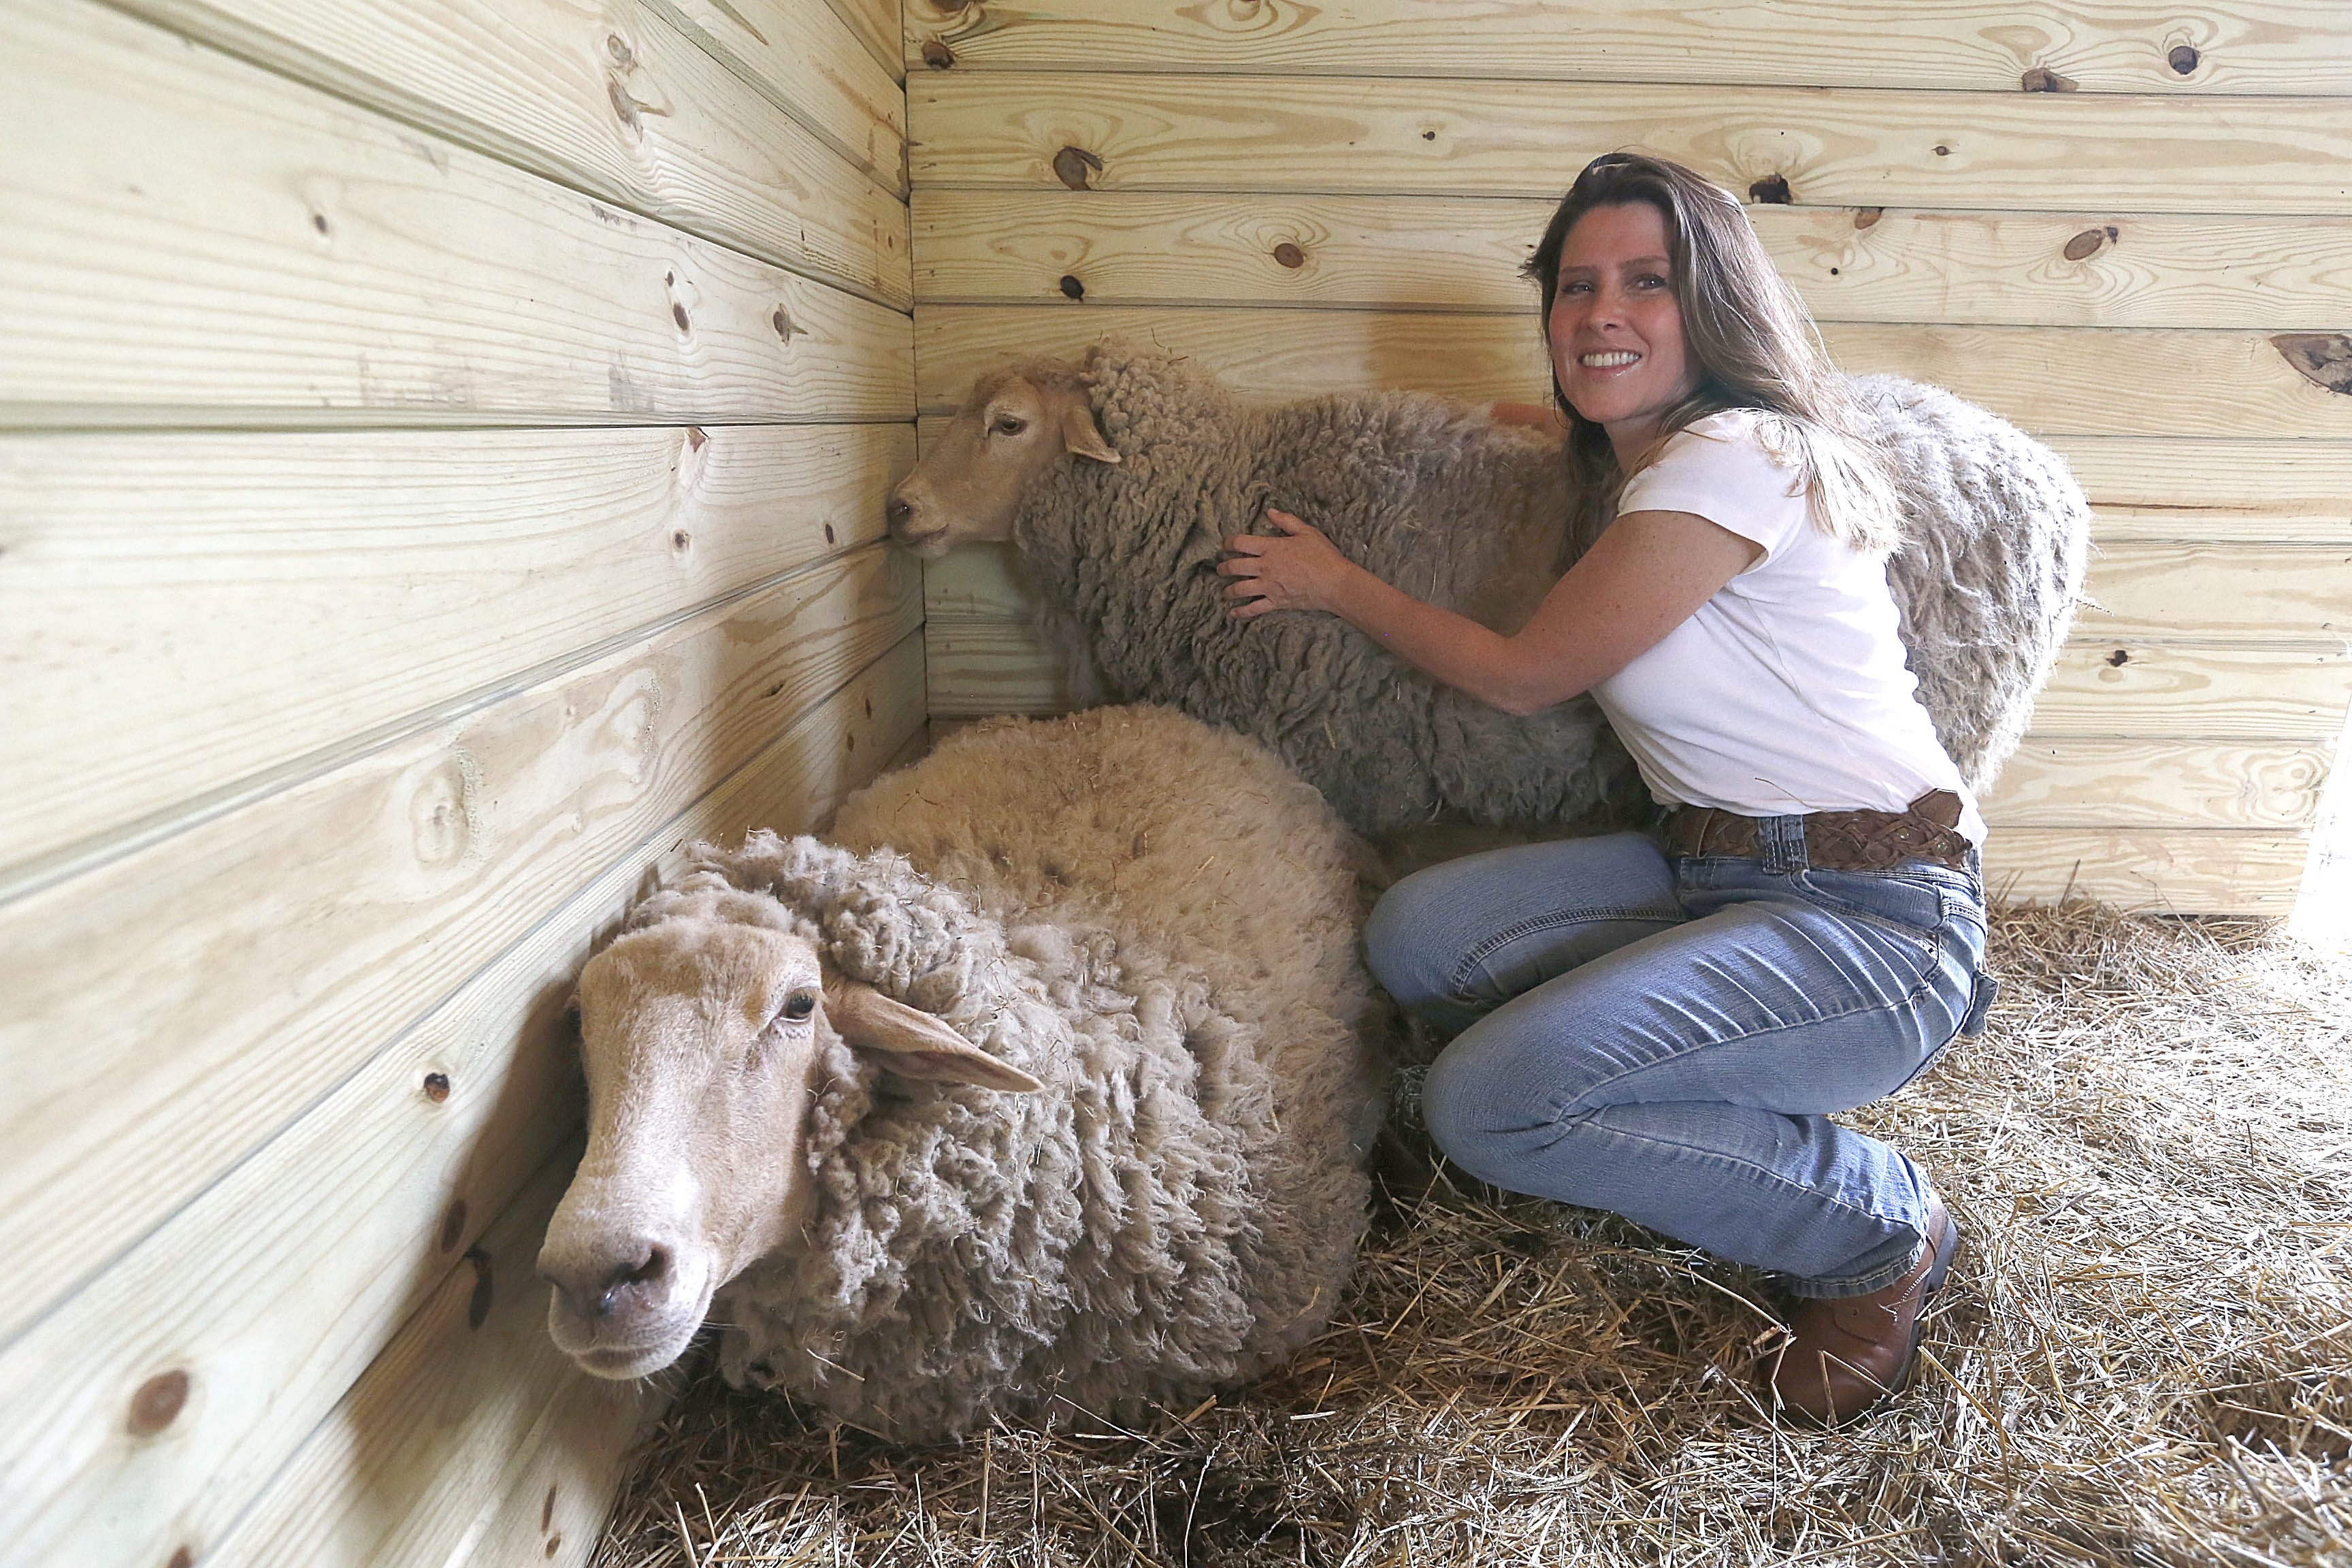 Tracy Murphy rescues a variety of farmed animals from bad situations and cares for them at Asha Sanctuary.